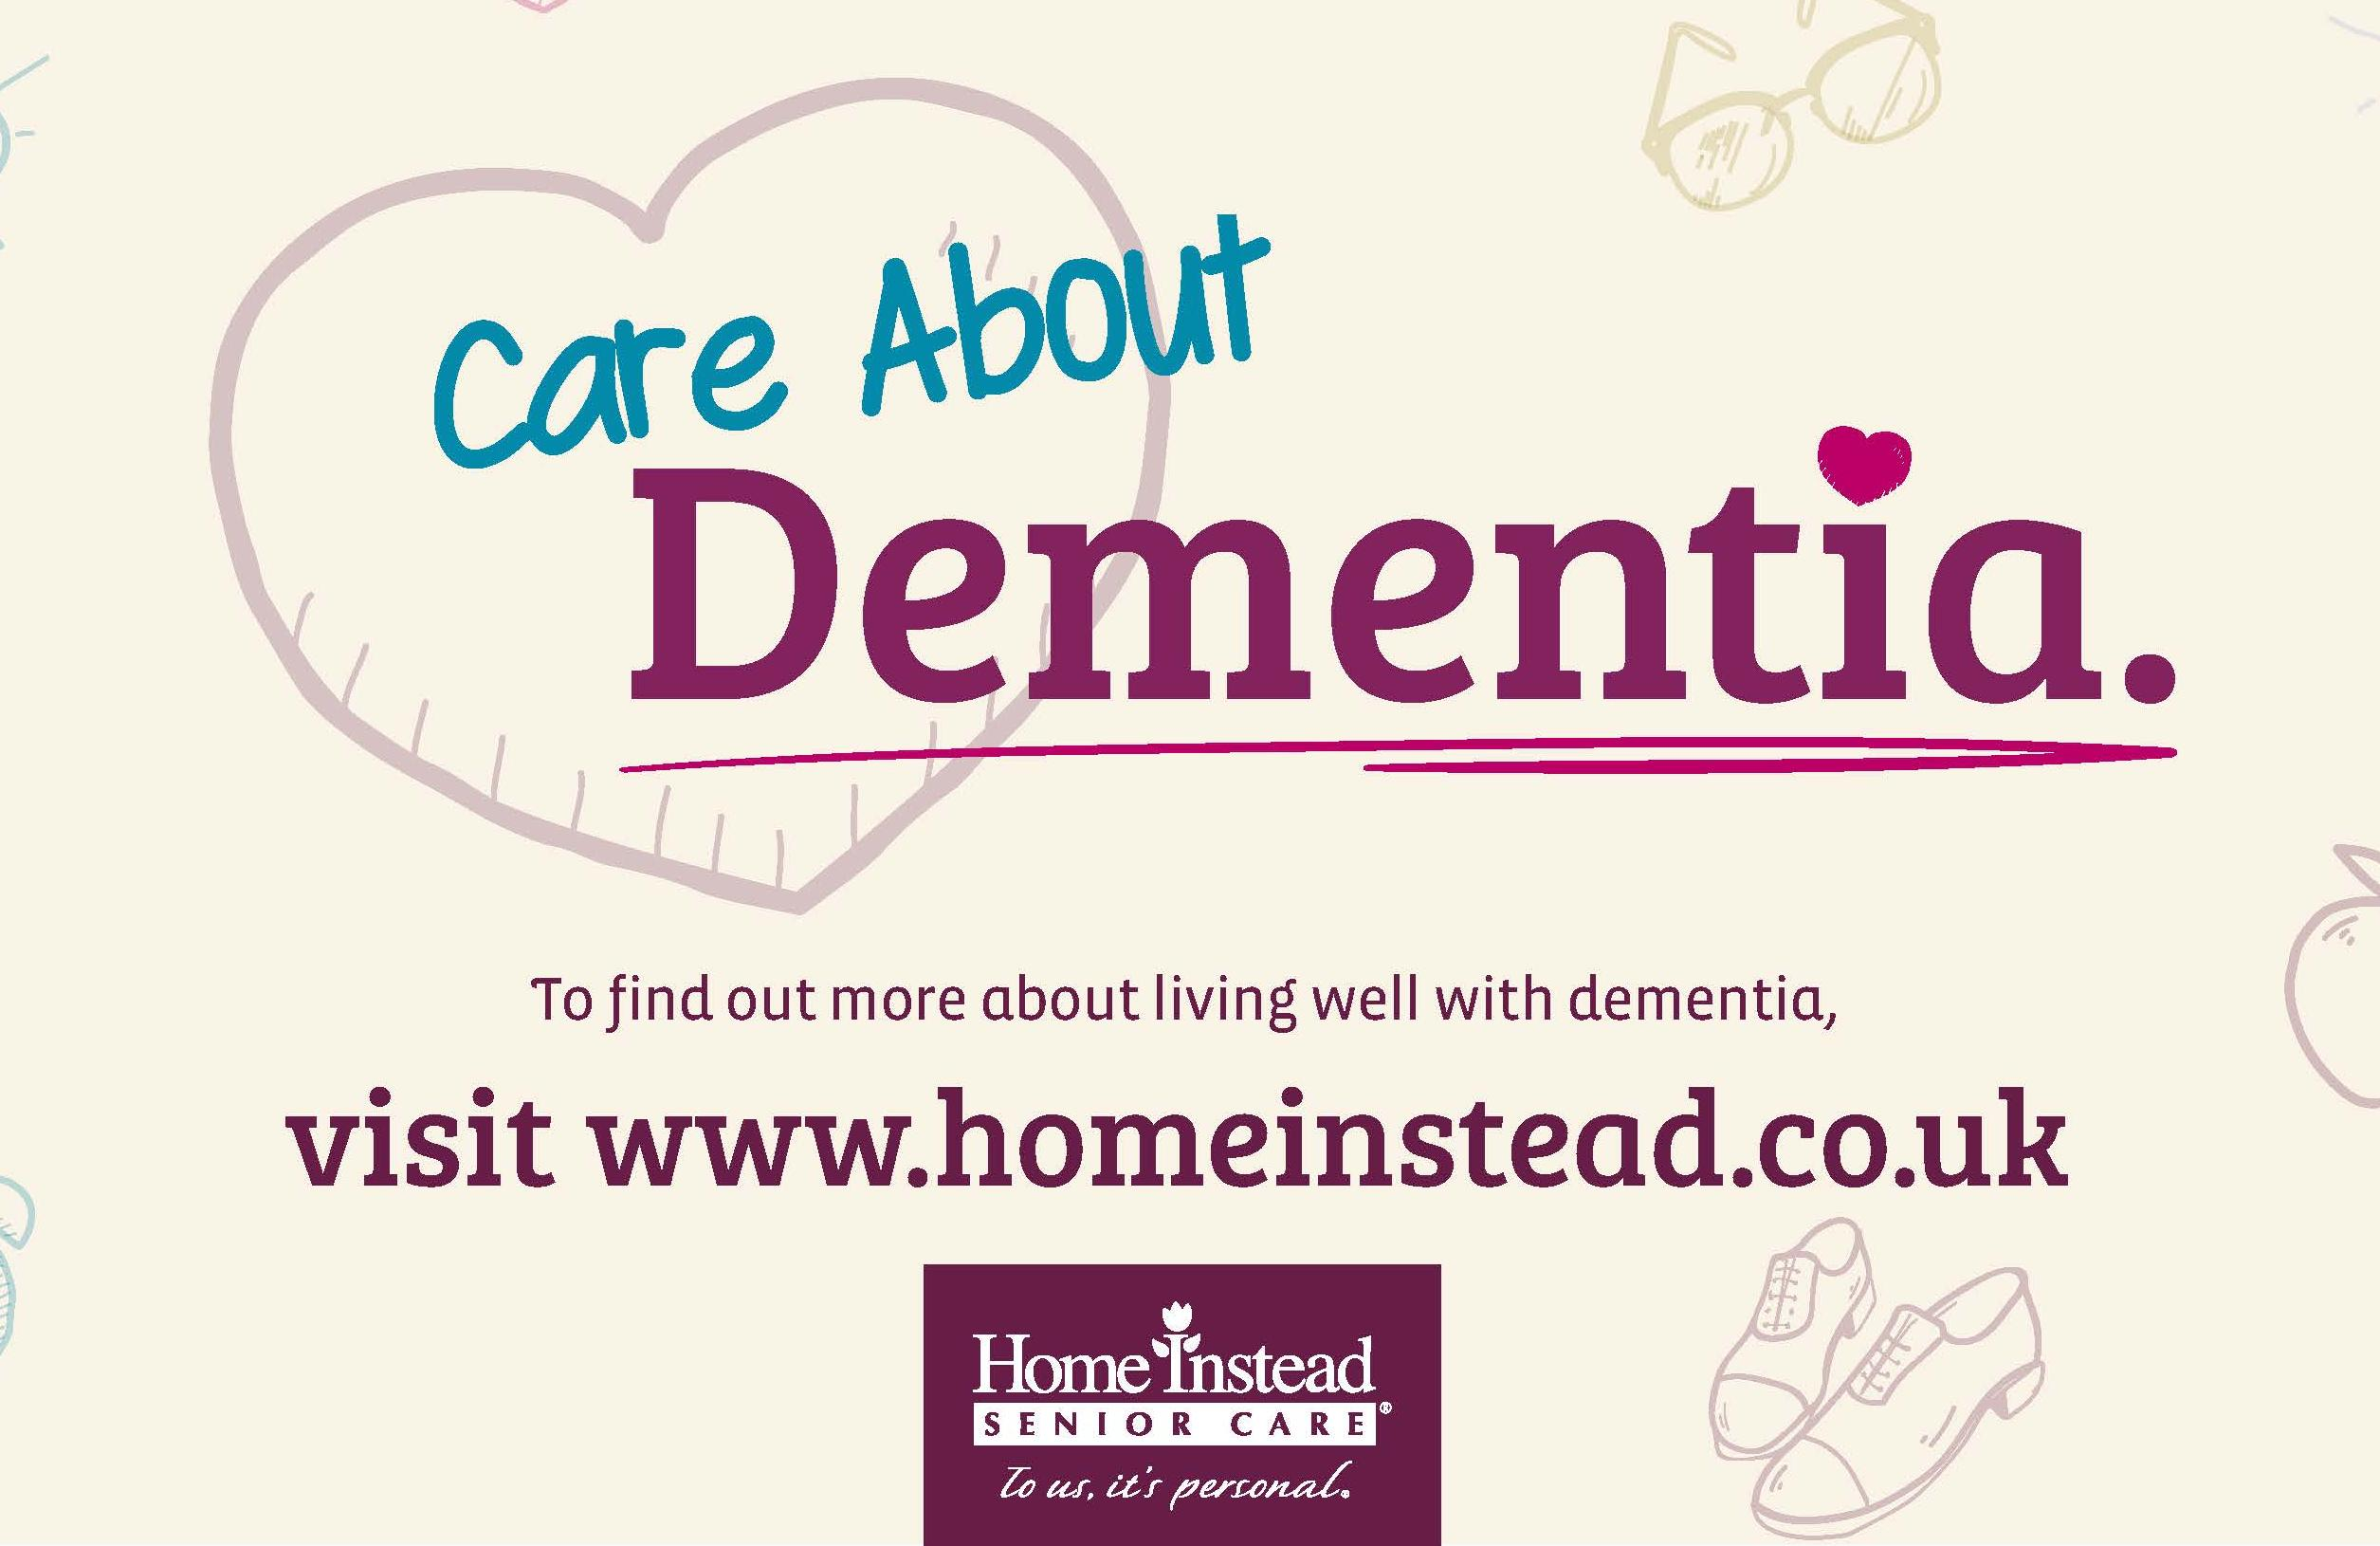 Care About Dementia Home Instead